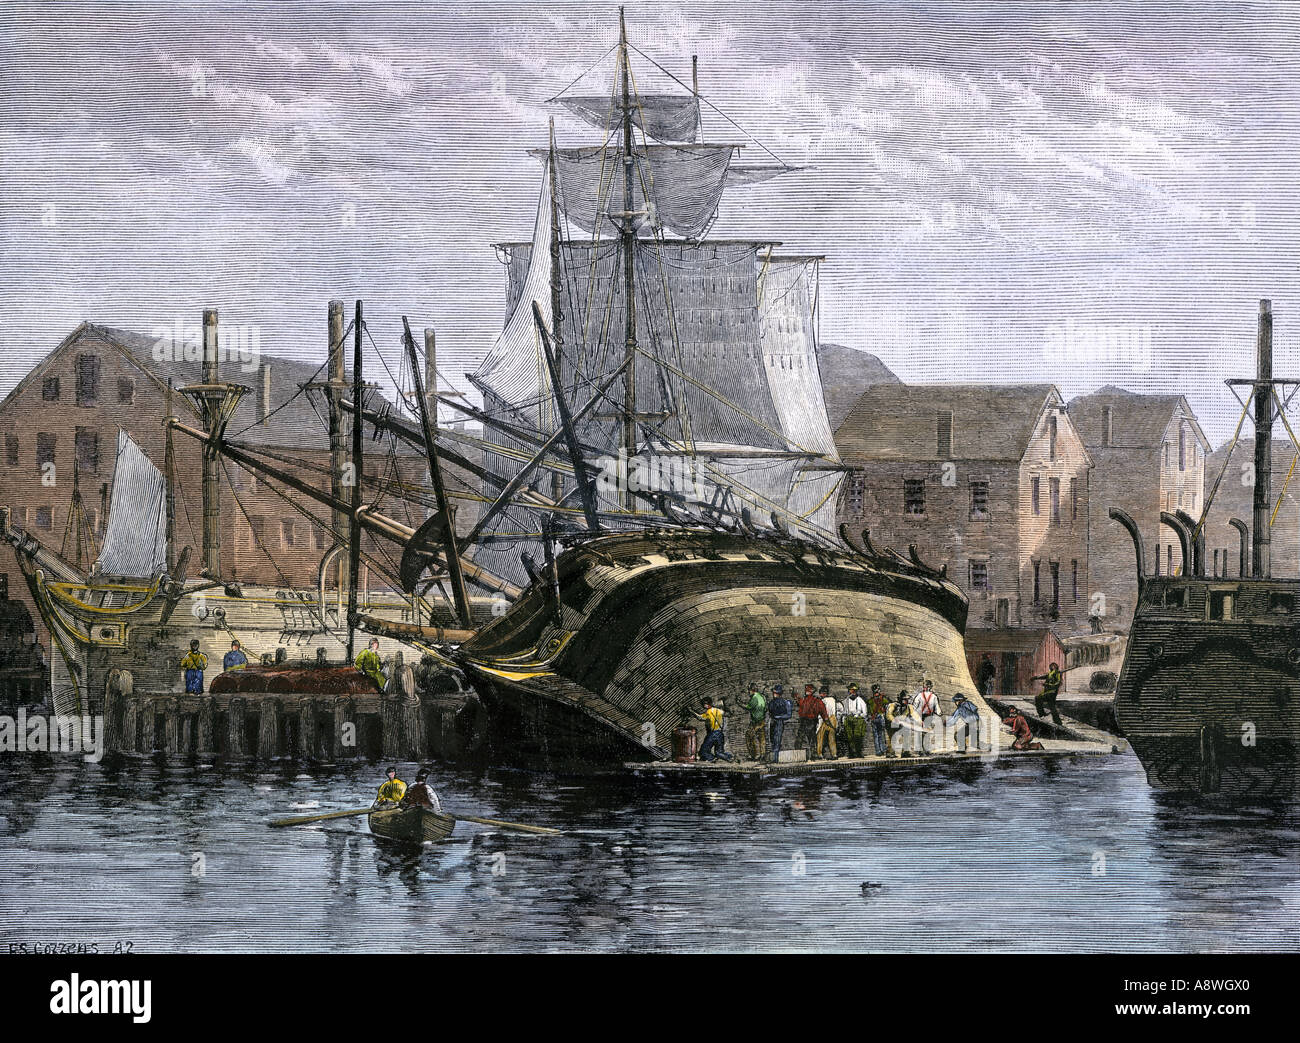 Whalers in action wood engraving published in 1855 stock illustration - Whaling Ship Hove Down For Hull Repairs In New Bedford Massachusetts 1800s Stock Image